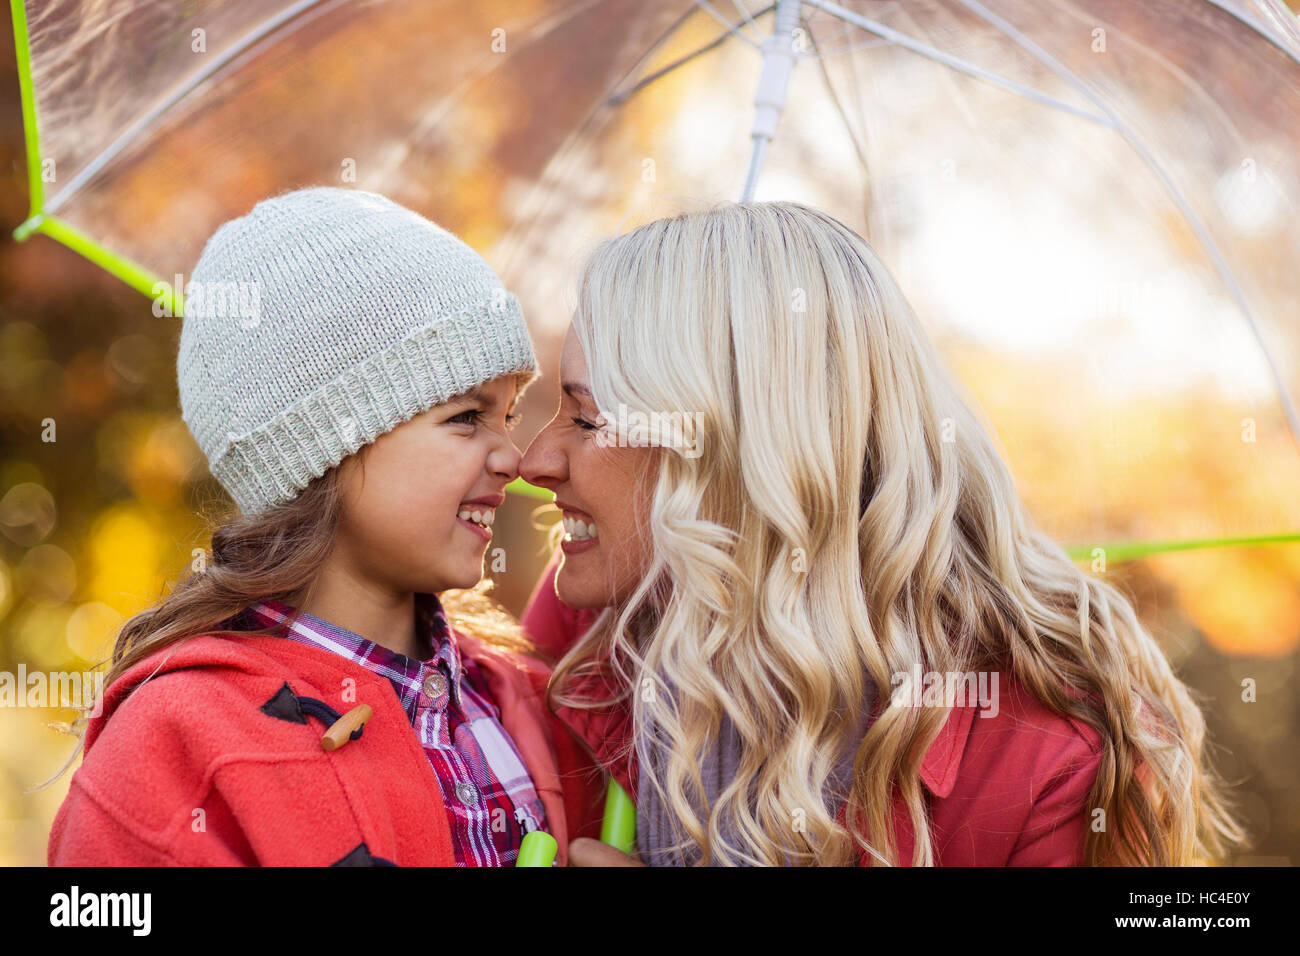 Mother and daughter rubbing noses at park - Stock Image